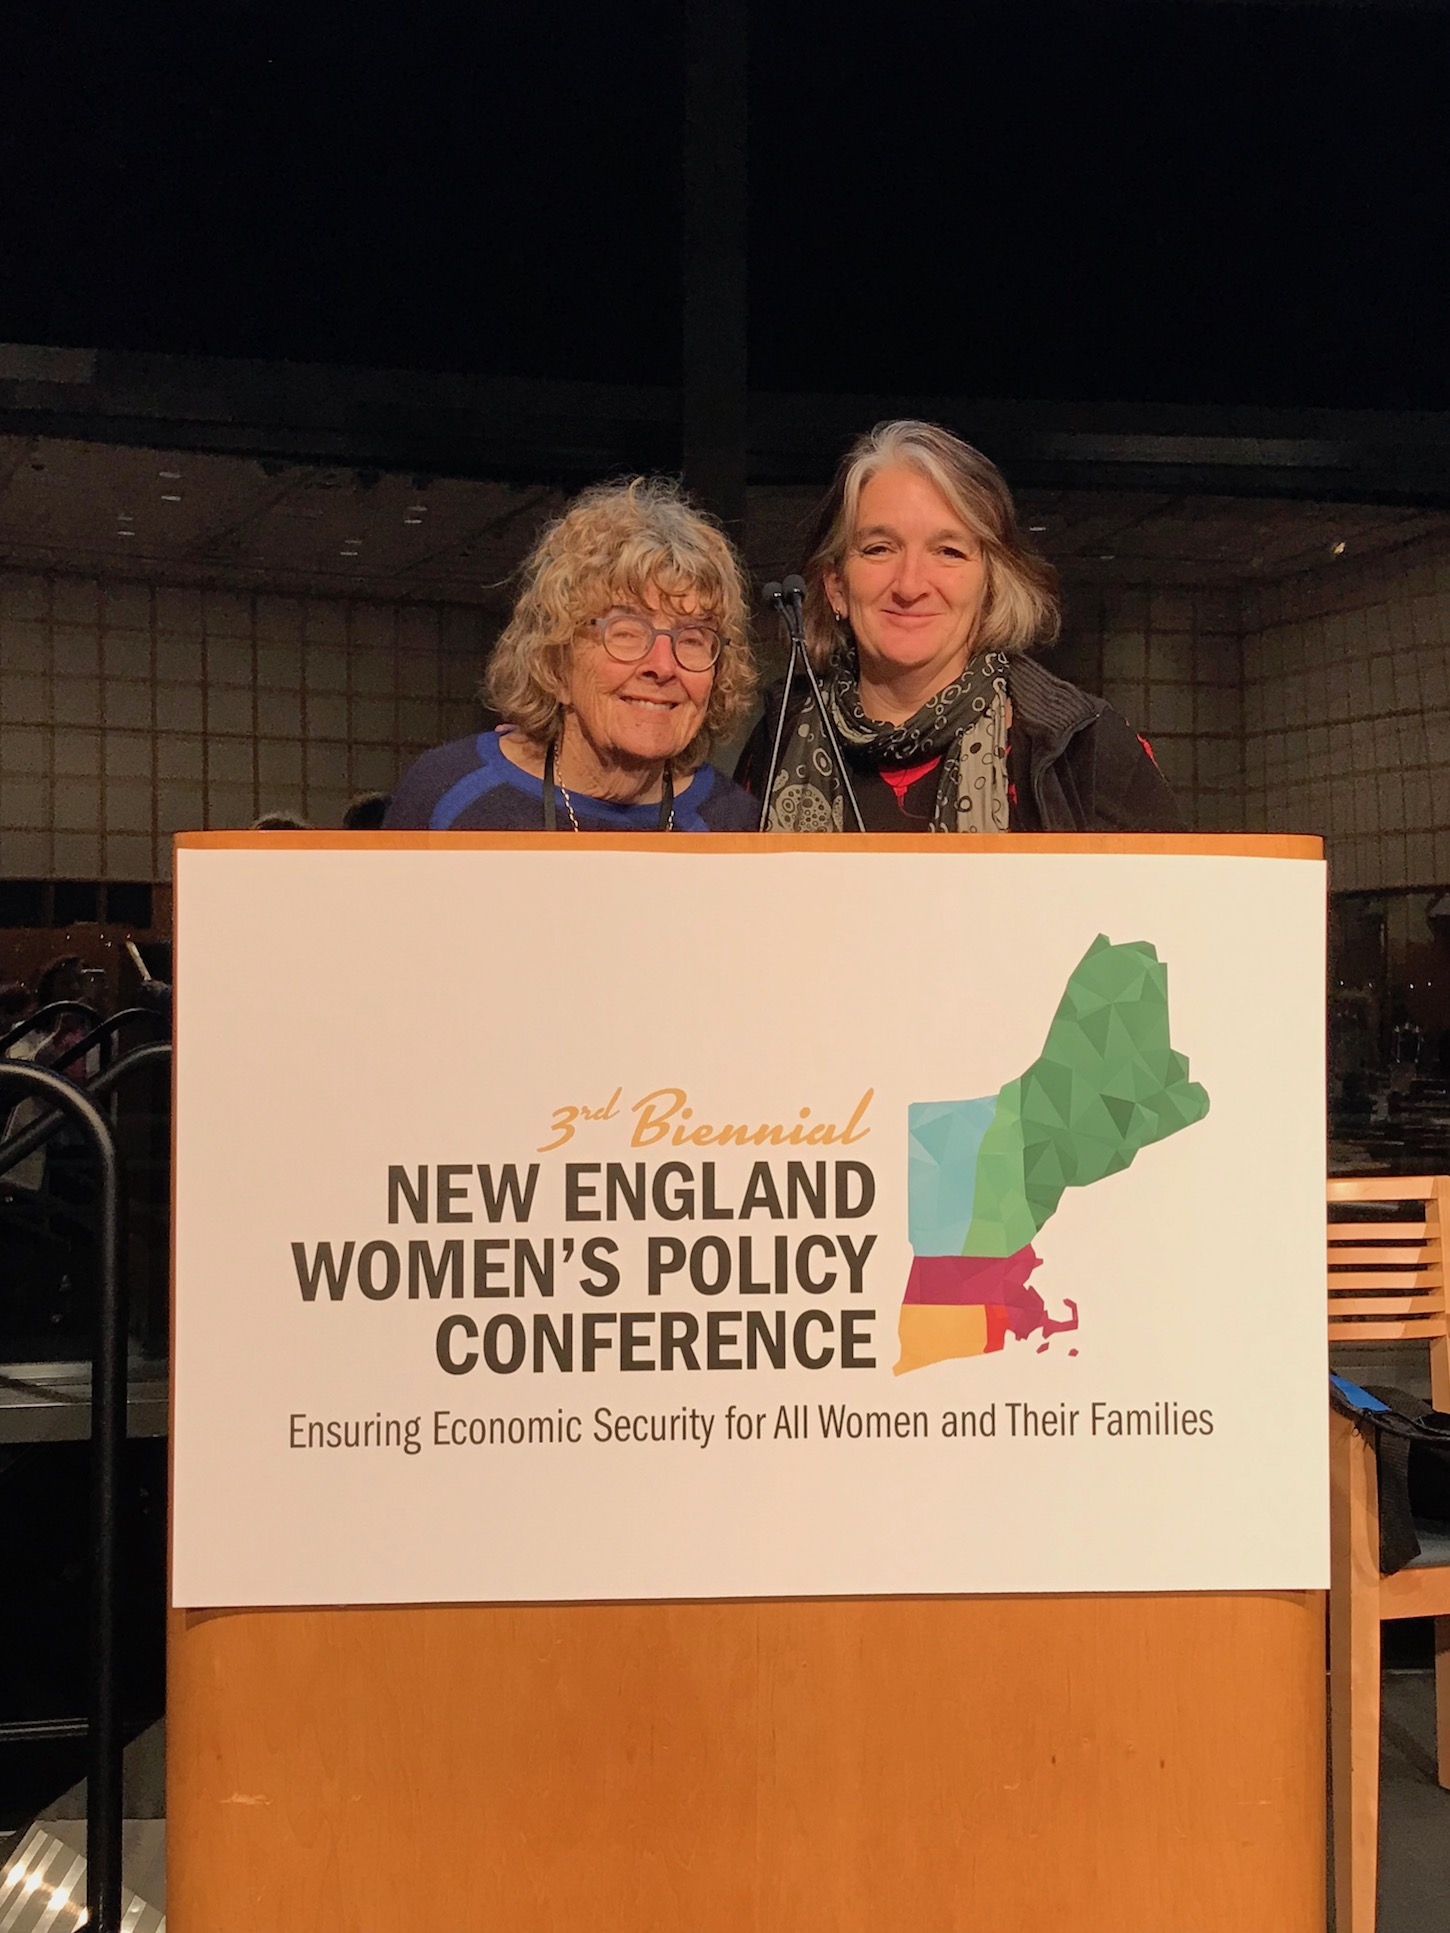 Becky and her mom, Flora Parisky, at the New England Women's Policy Conference